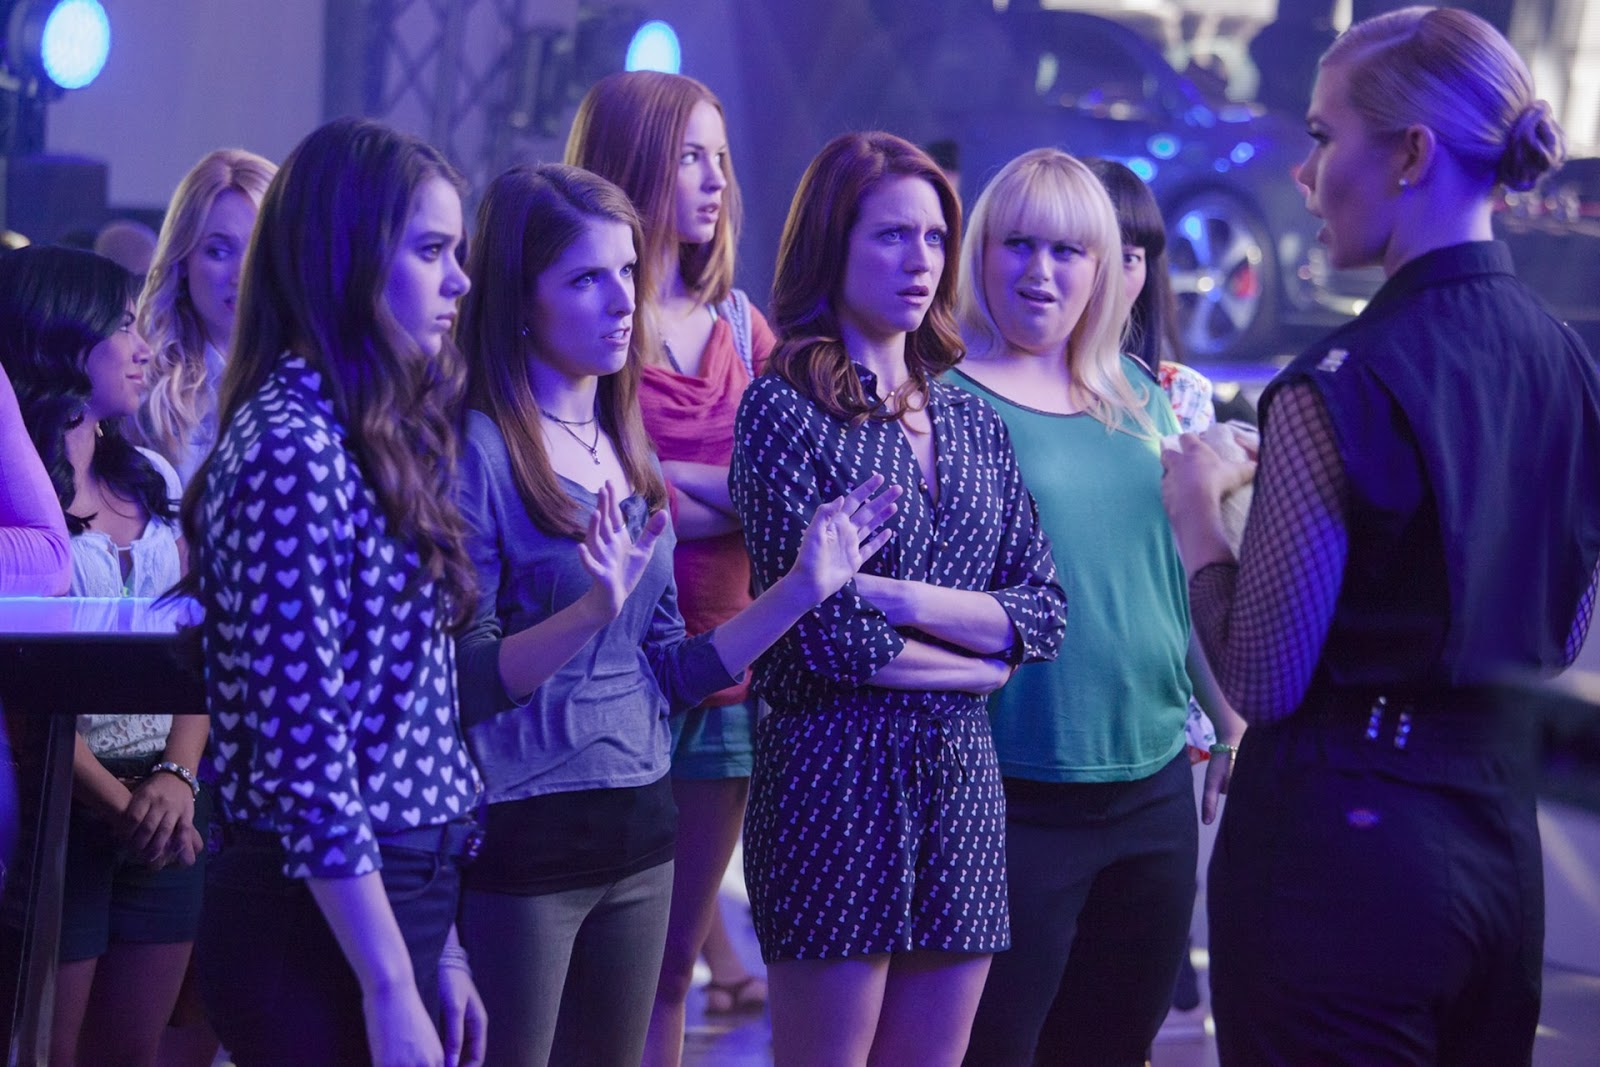 Pitch Perfect 2 2015 Sequel Continues Random Sing Offs And Friendship Hilarity Finding Wonderland